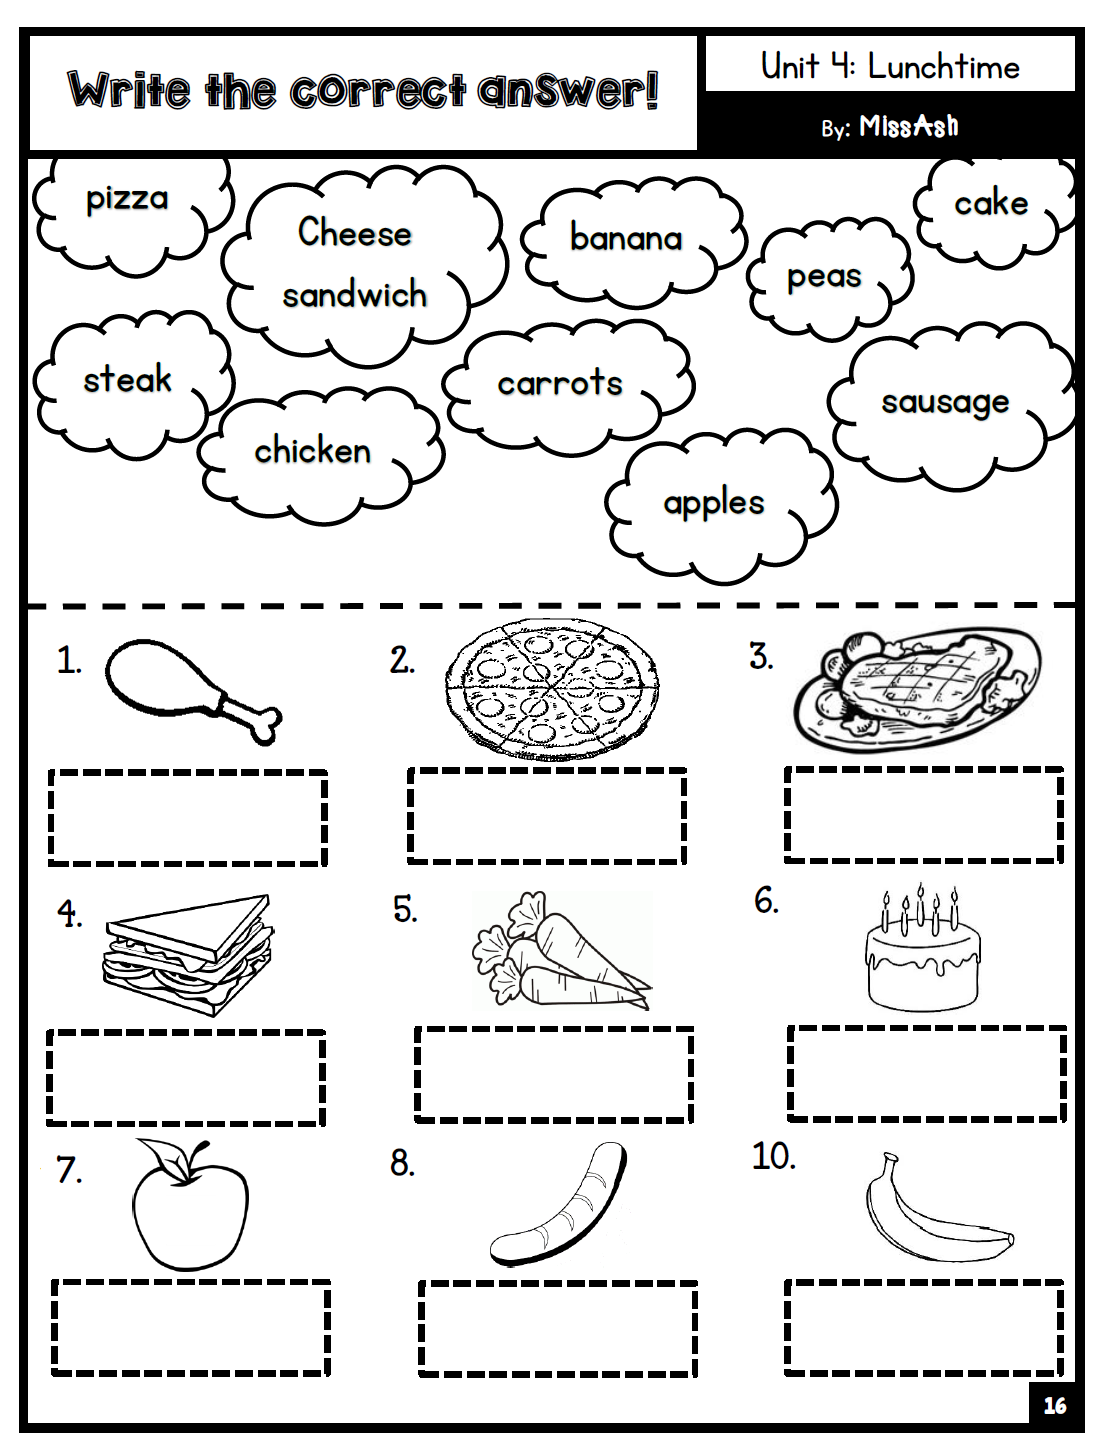 Ash The Teacher Year 1 Supplementary Worksheets Unit 0